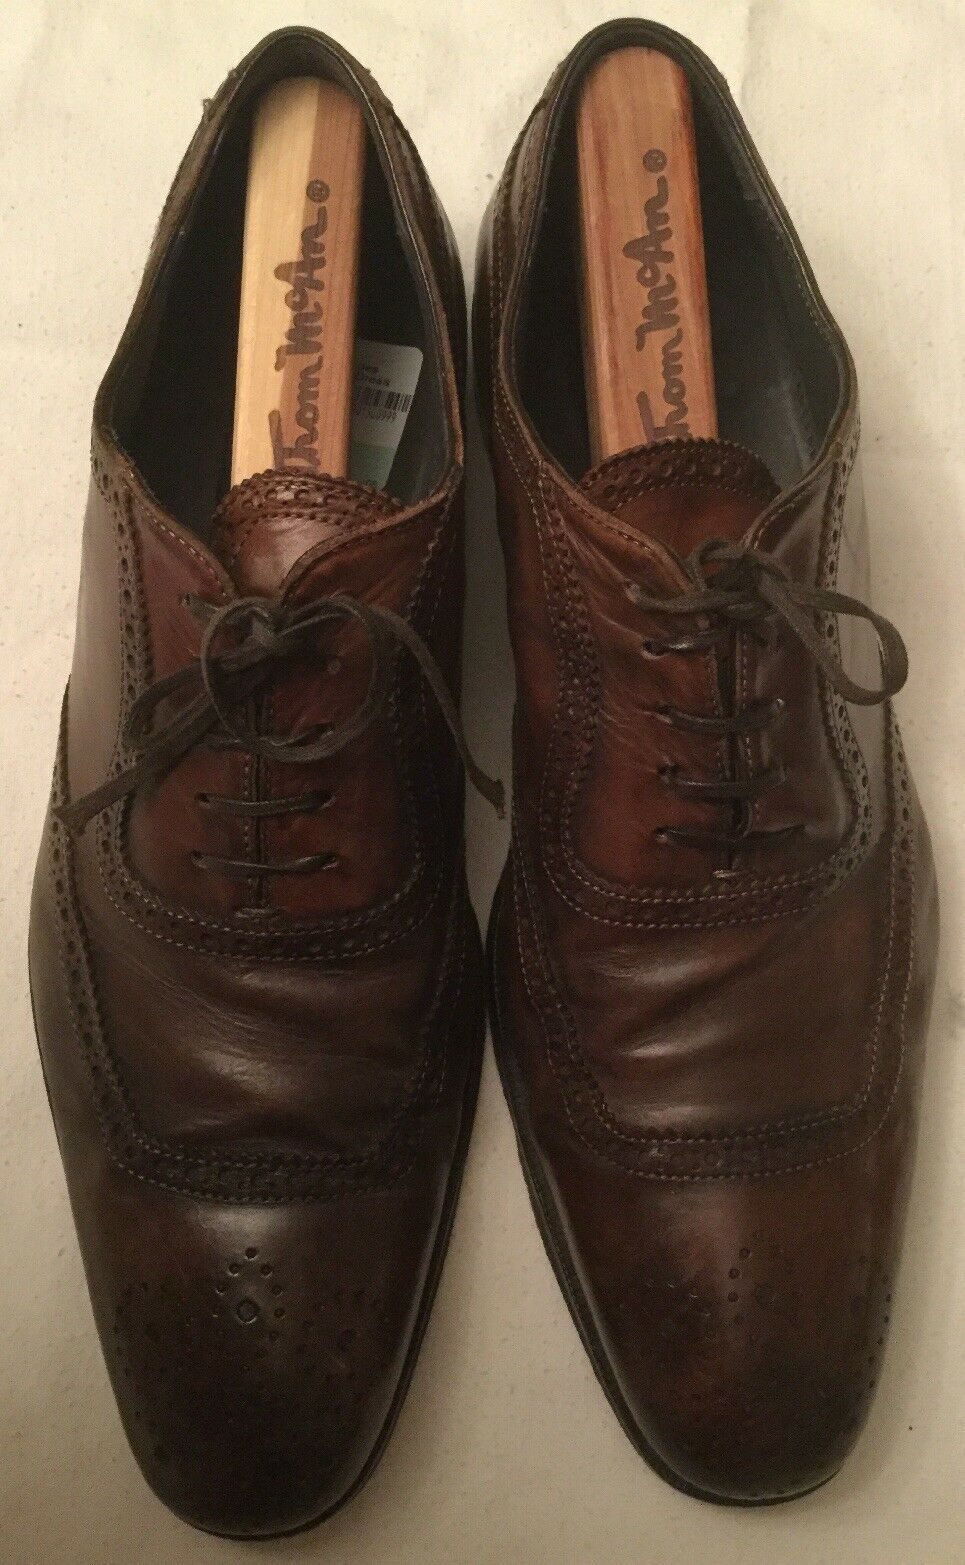 To Stiefel New York Brogue Wingtip Oxford Dress Dress Dress schuhe 9 76871e